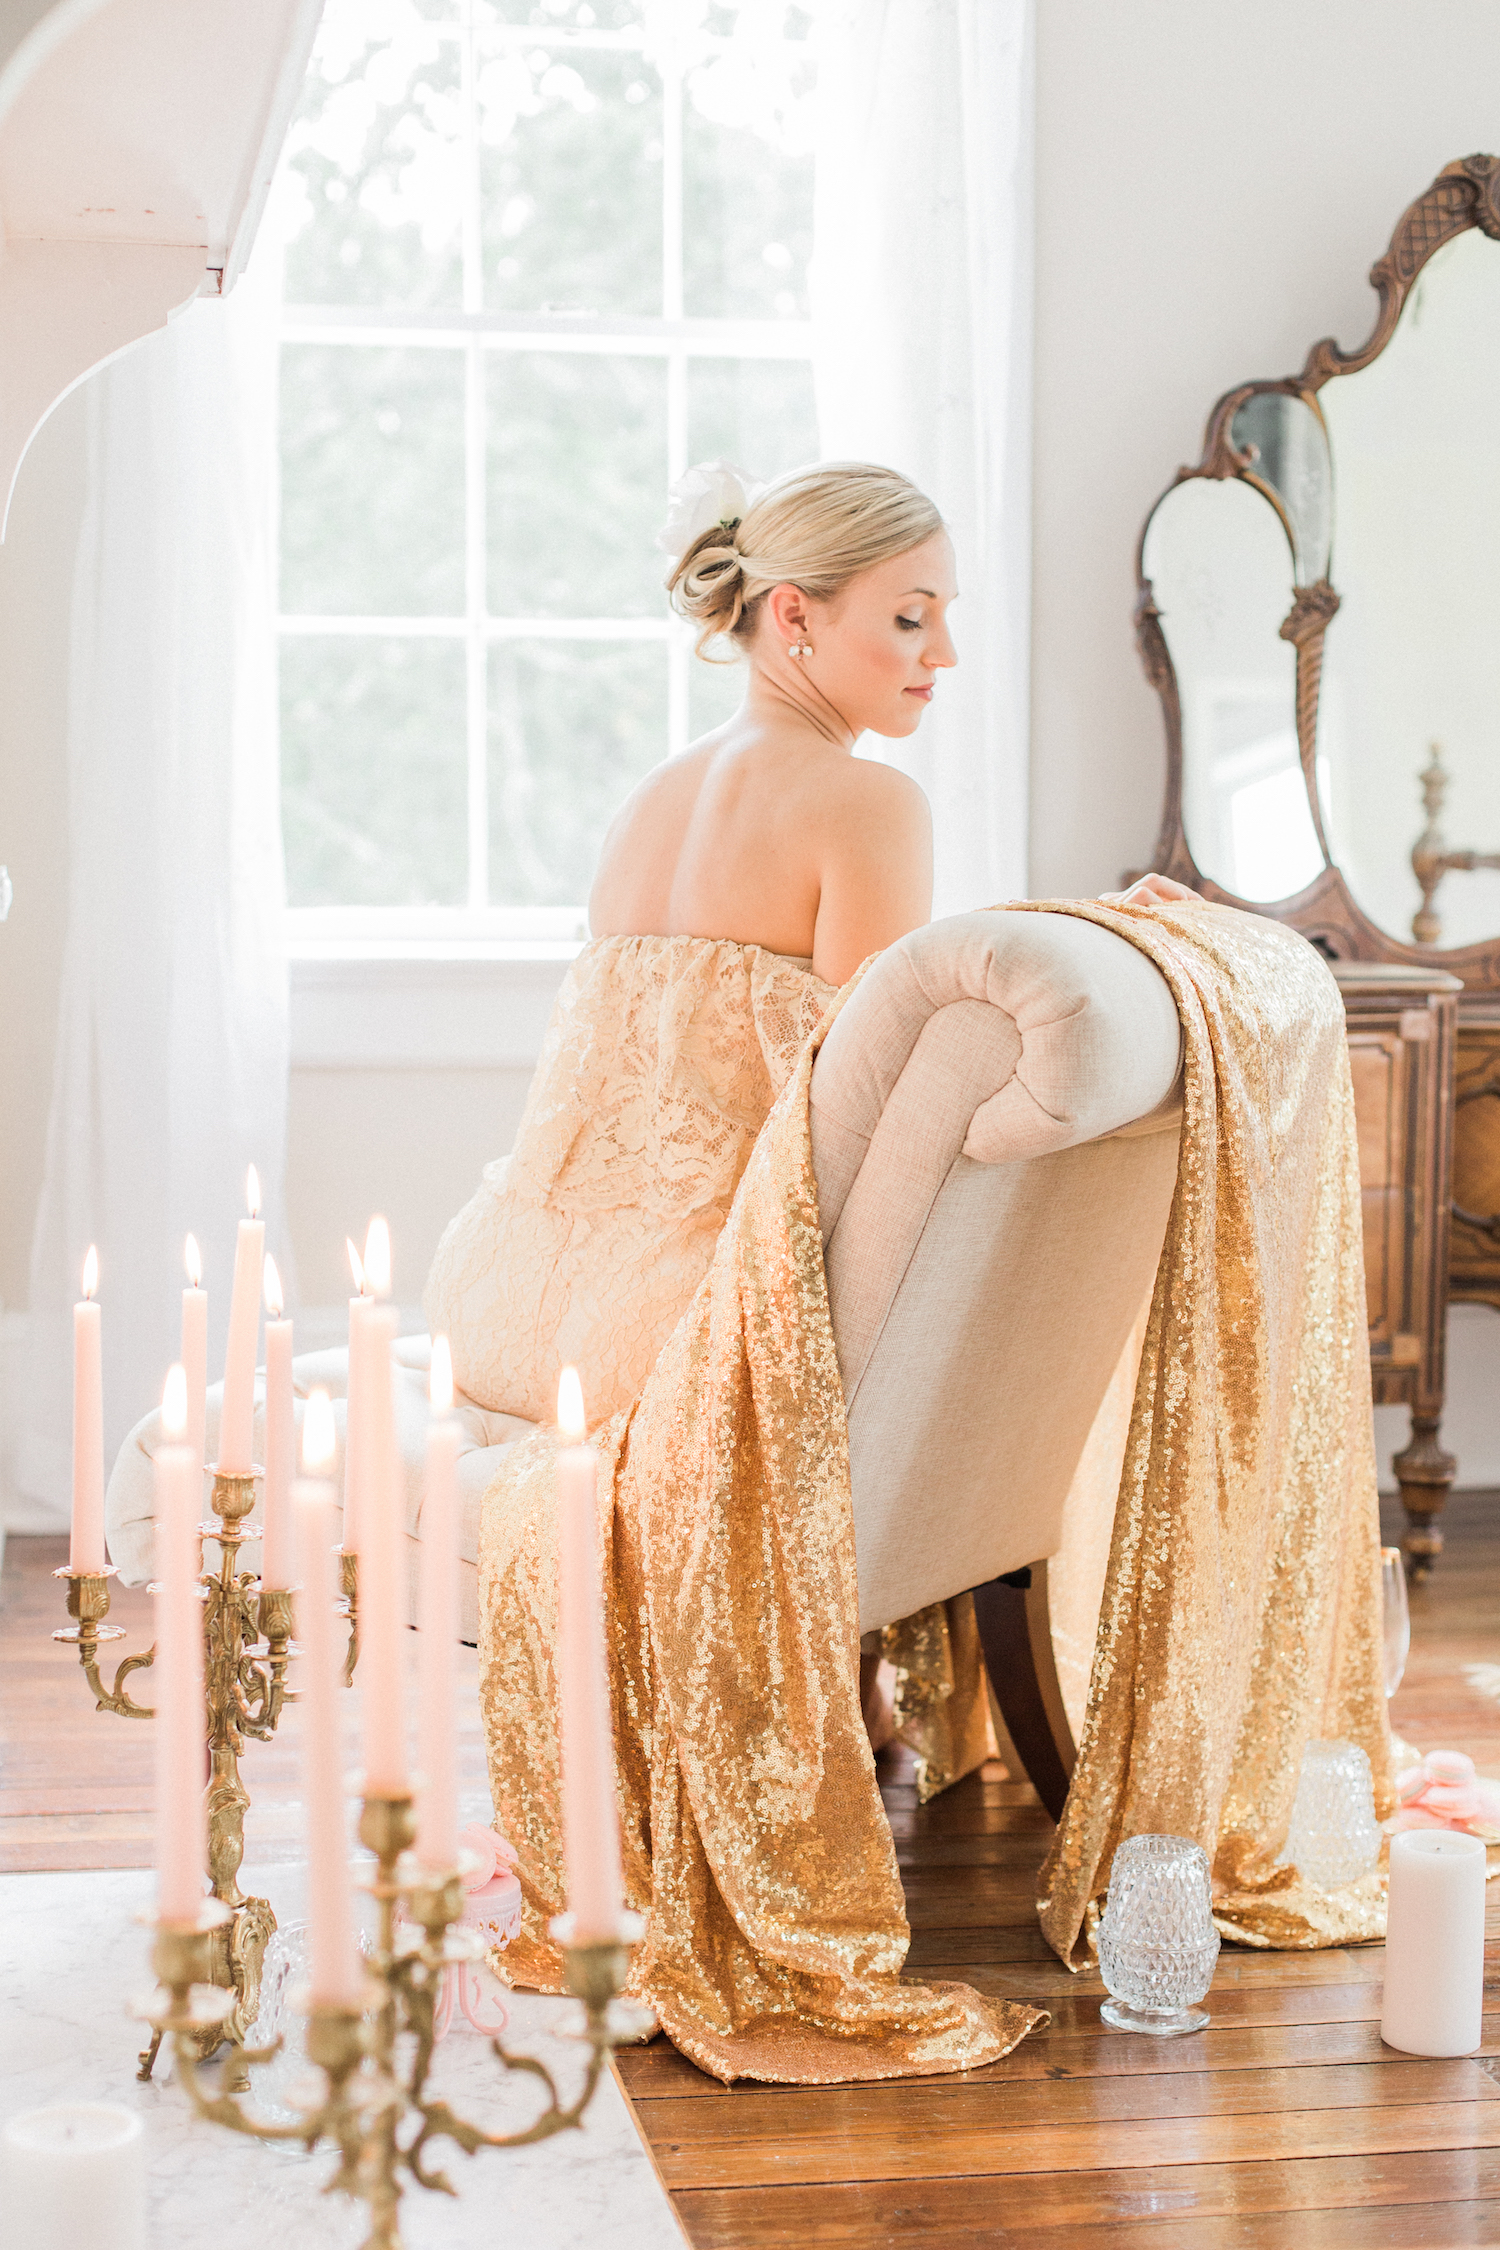 Sparkly glittery gold getting ready room with candelabras. Gold lace off shoulder wedding dress.